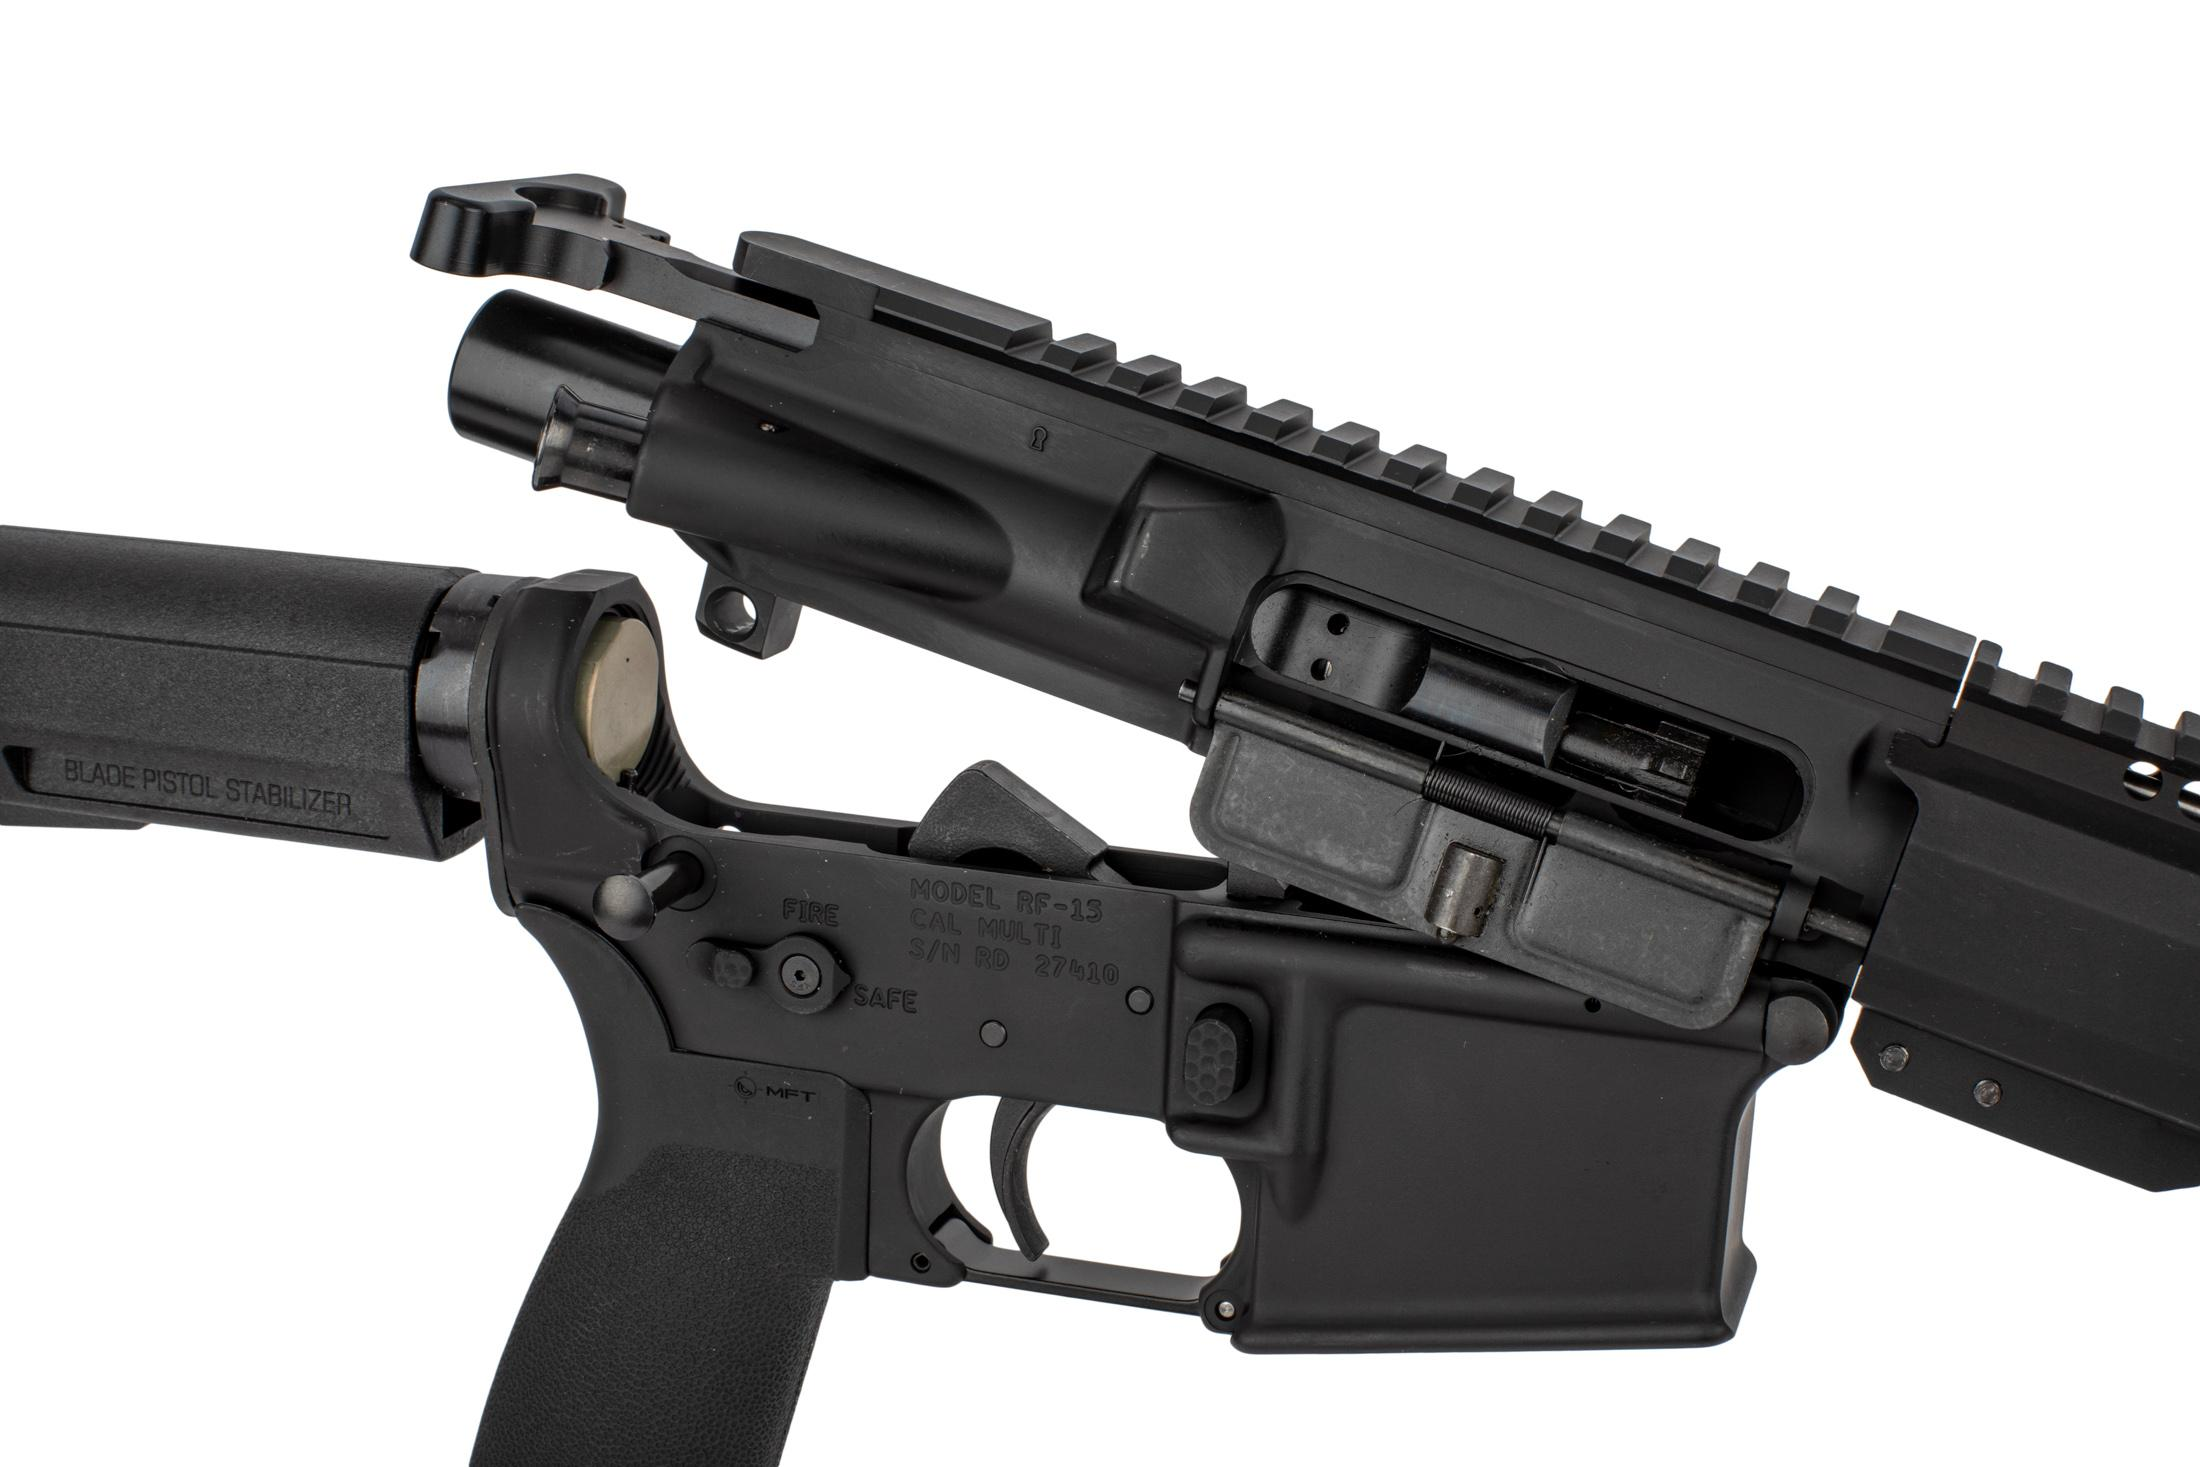 Radical Firearms 5.56 NATO AR-15 pistol with 7.5 barrel and Shockwave Brace has an M16 cut BCG and standard charging handle